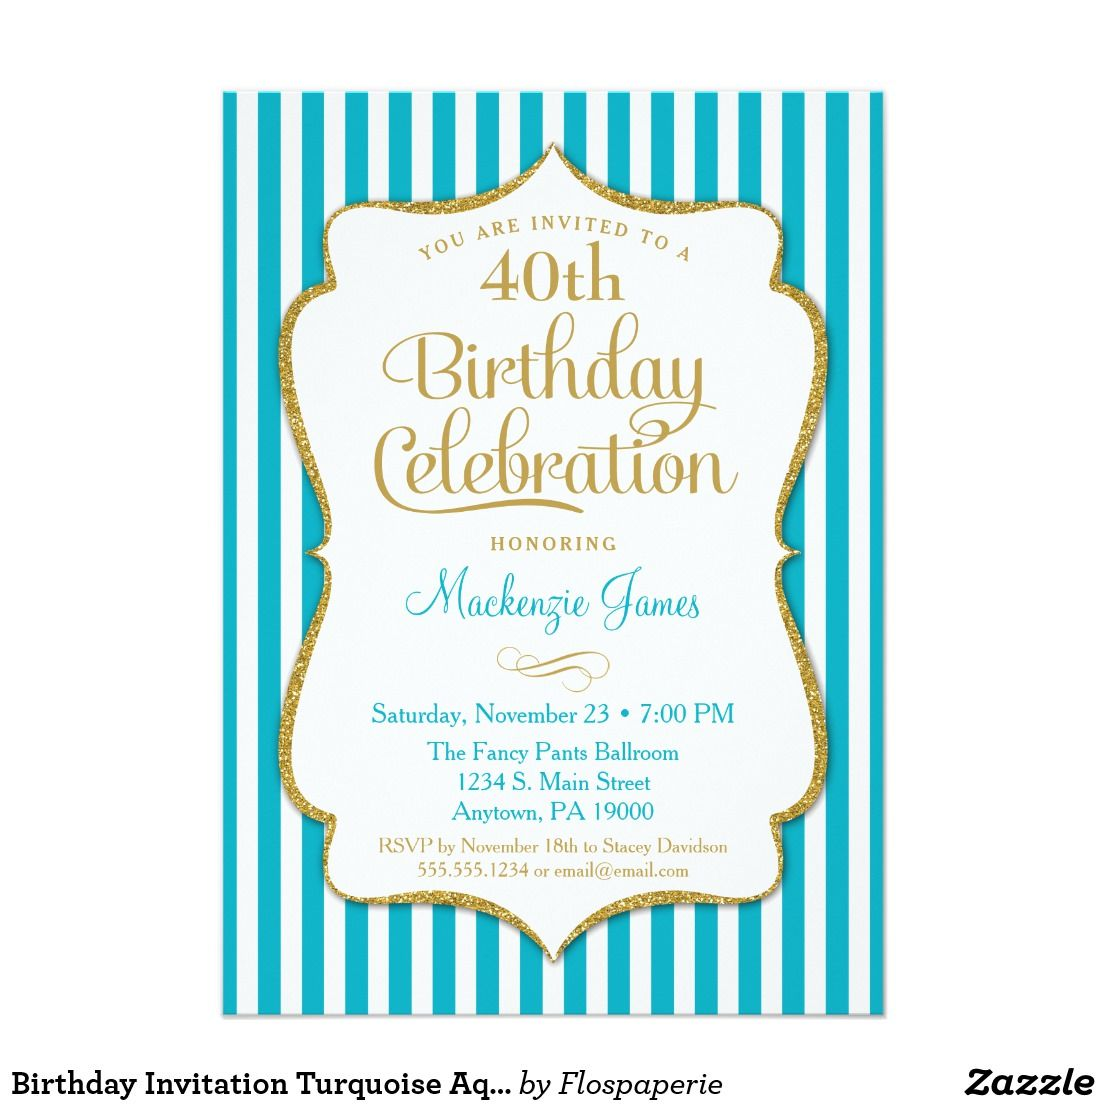 Birthday invitation turquoise aqua gold adult teen elegant birthday invitation turquoise aqua gold adult teen an elegant birthday party invitation in turquoise and gold filmwisefo